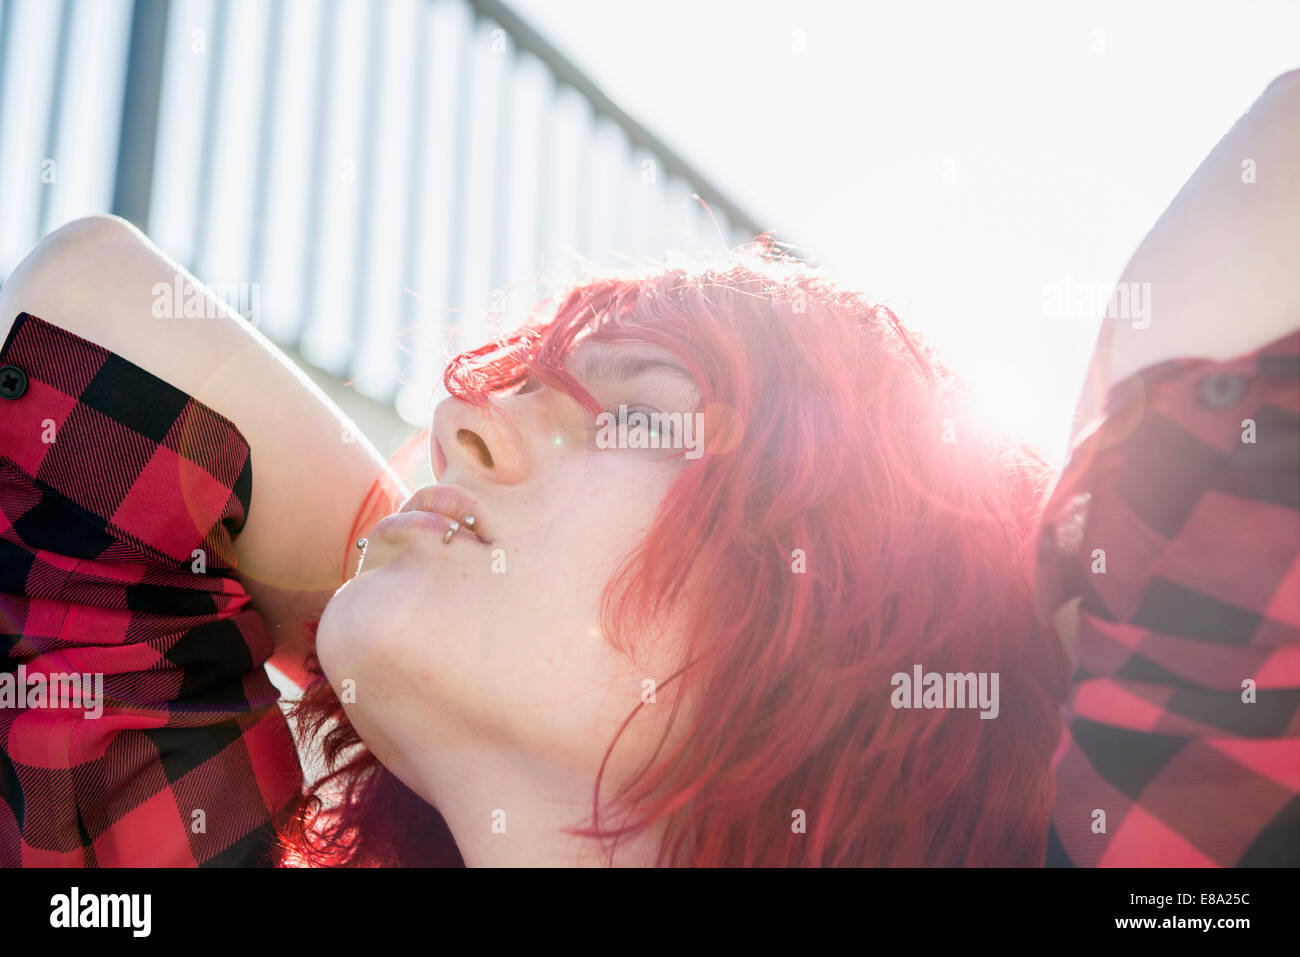 Teenage girl portrait day-dreaming red dyed hair - Stock Image